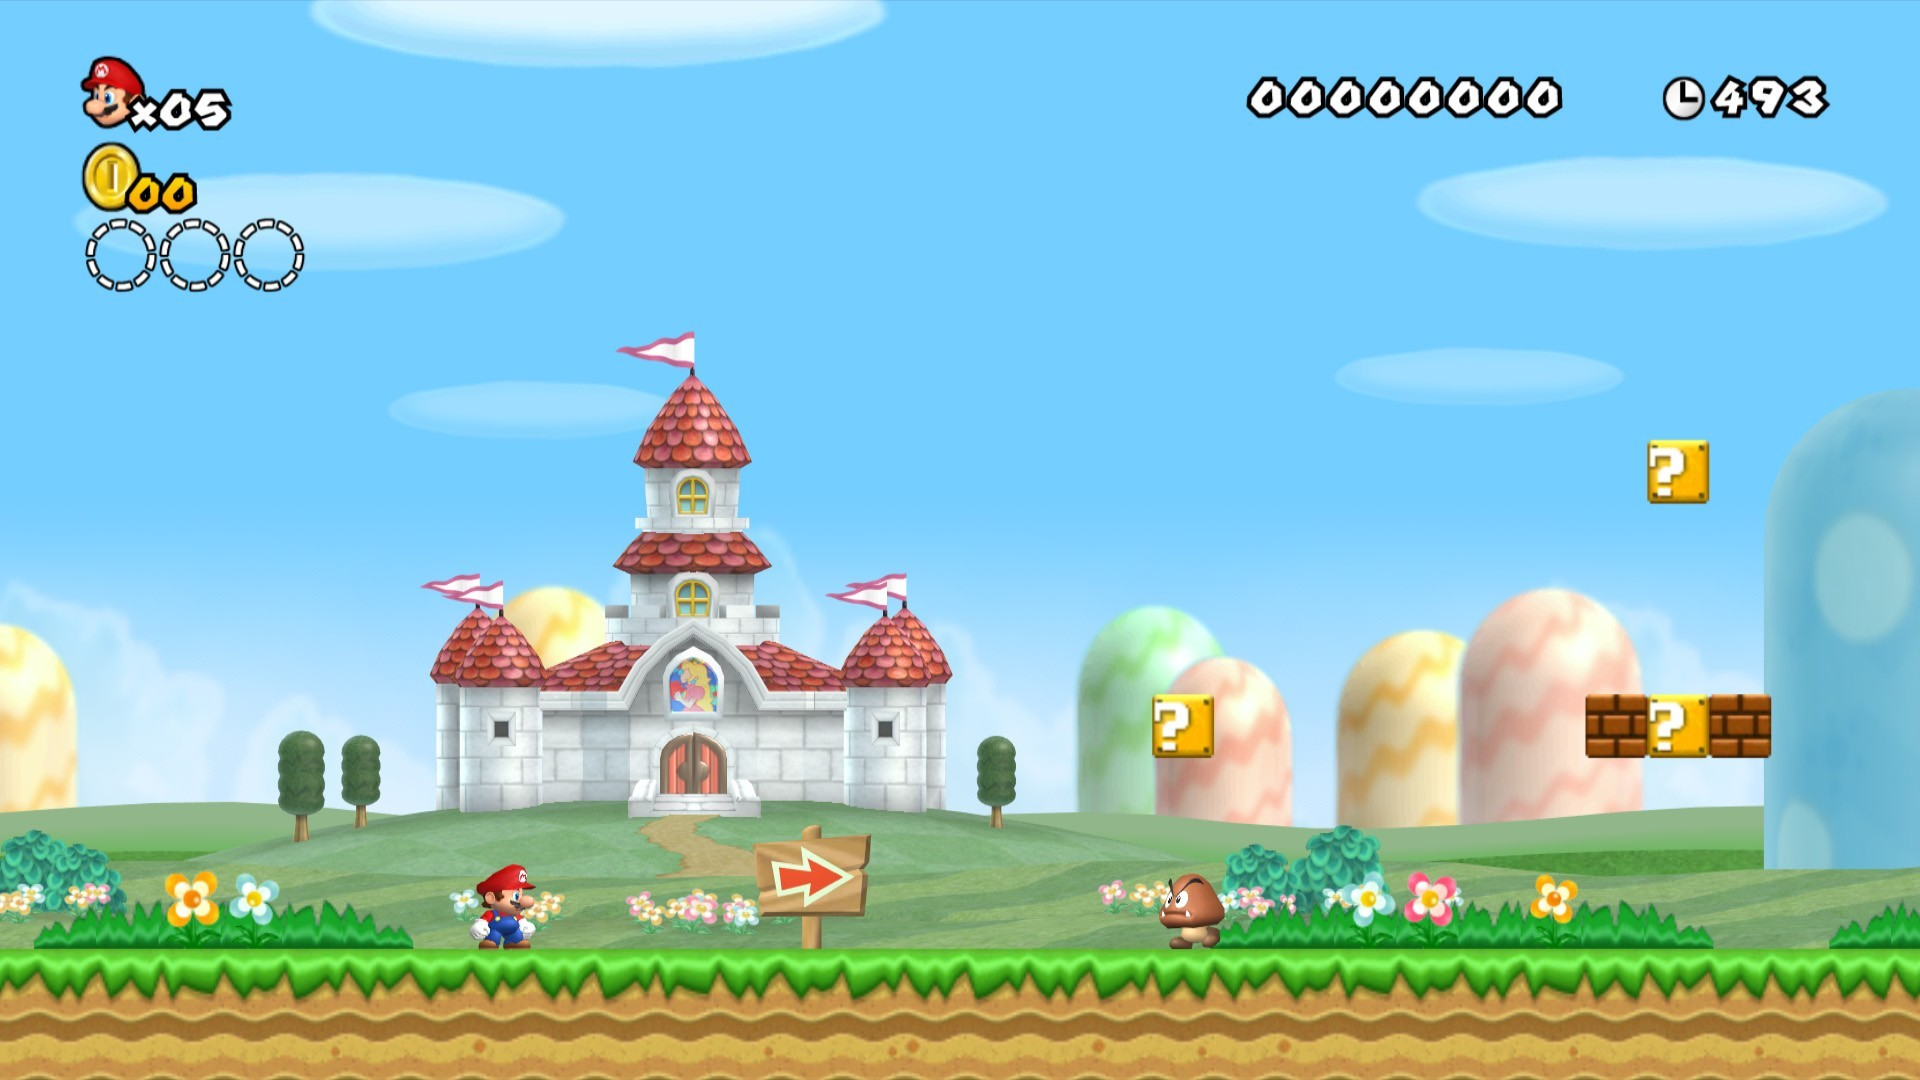 1920x1080 14 New Super Mario Bros. Wii HD Wallpapers | Backgrounds - Wallpaper Abyss